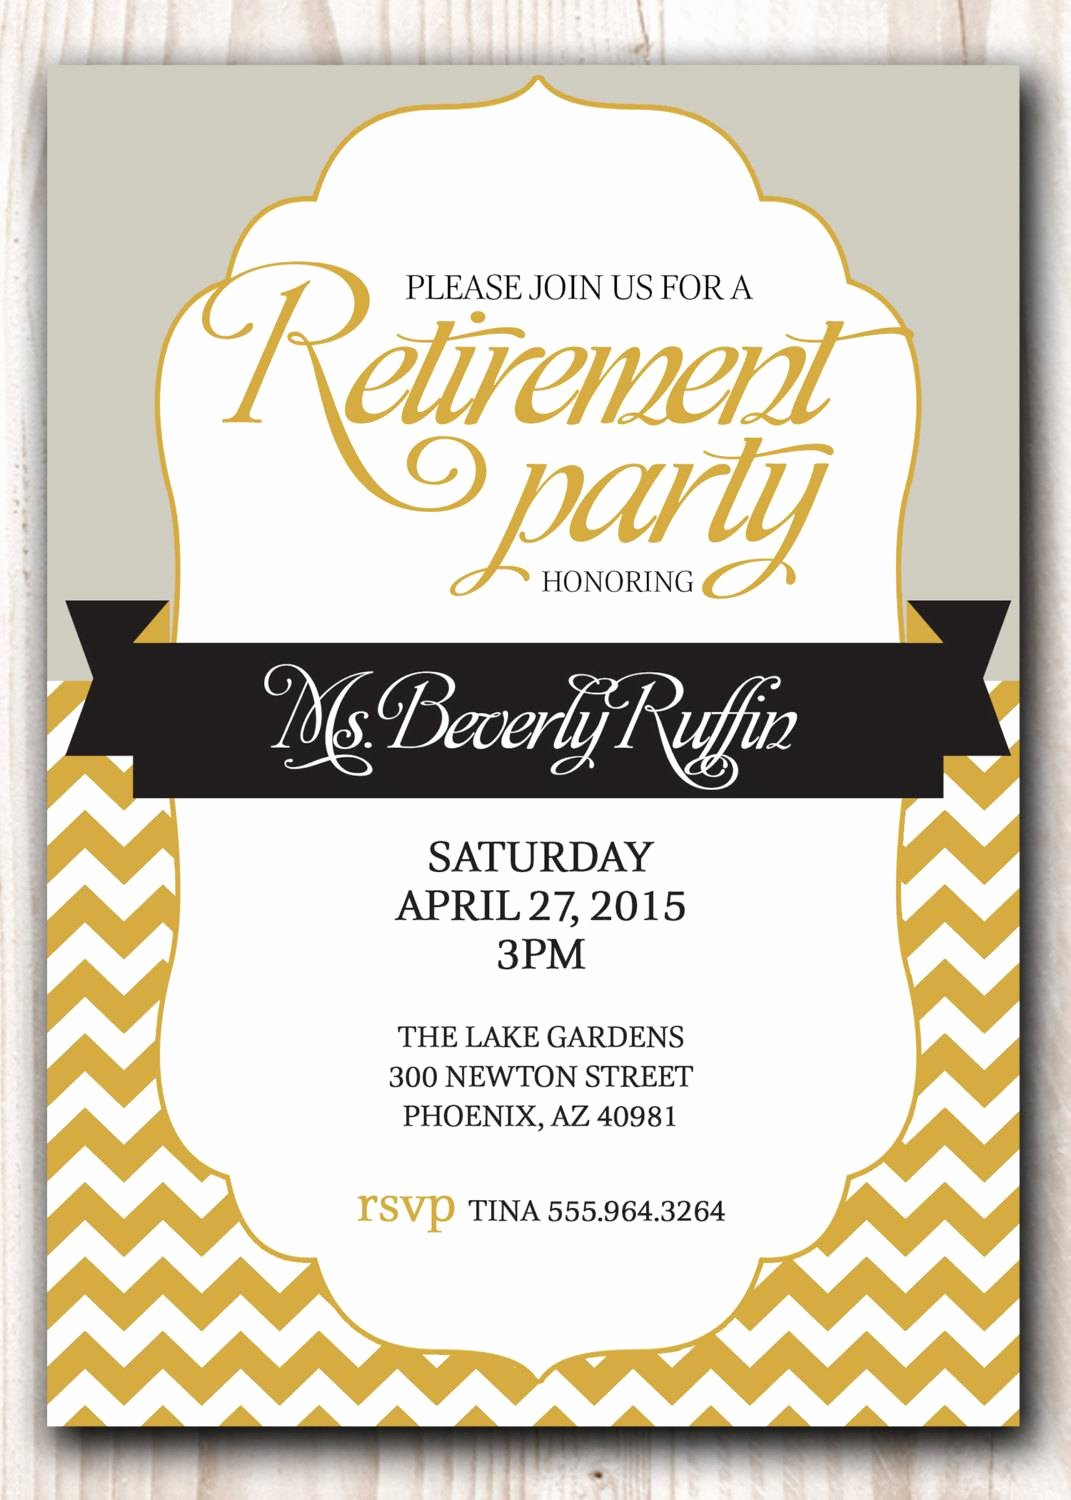 Party Invitations Templates Microsoft Word Lovely Retirement Party Invitation Template